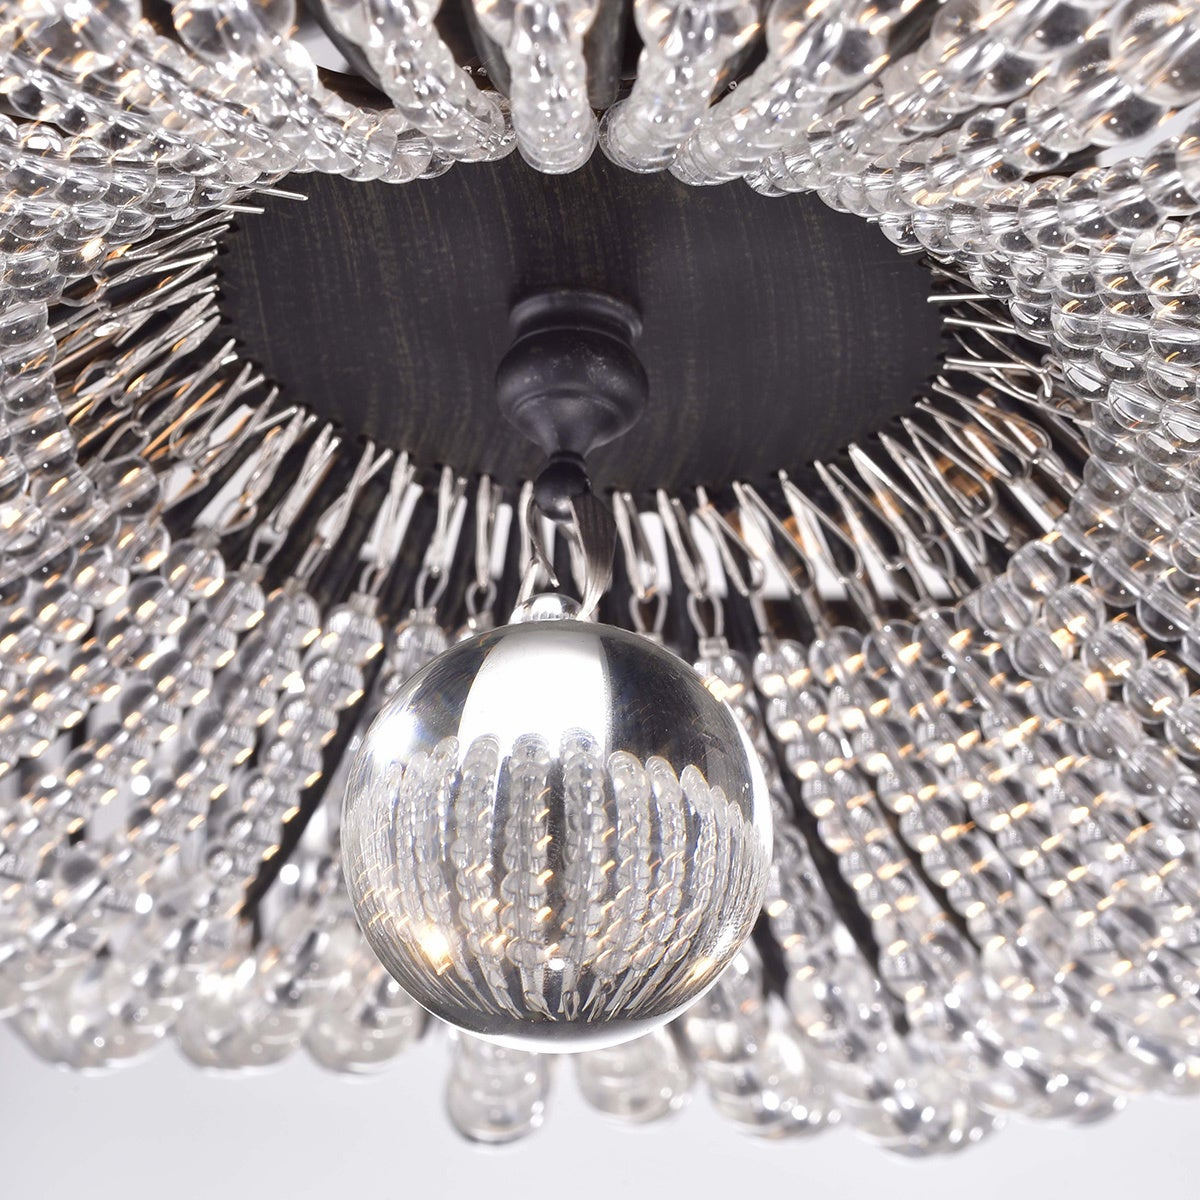 Connie 4 light antique black crystal beads flush mount chandelier connie 4 light antique black crystal beads flush mount chandelier free shipping today overstock 18050462 arubaitofo Images